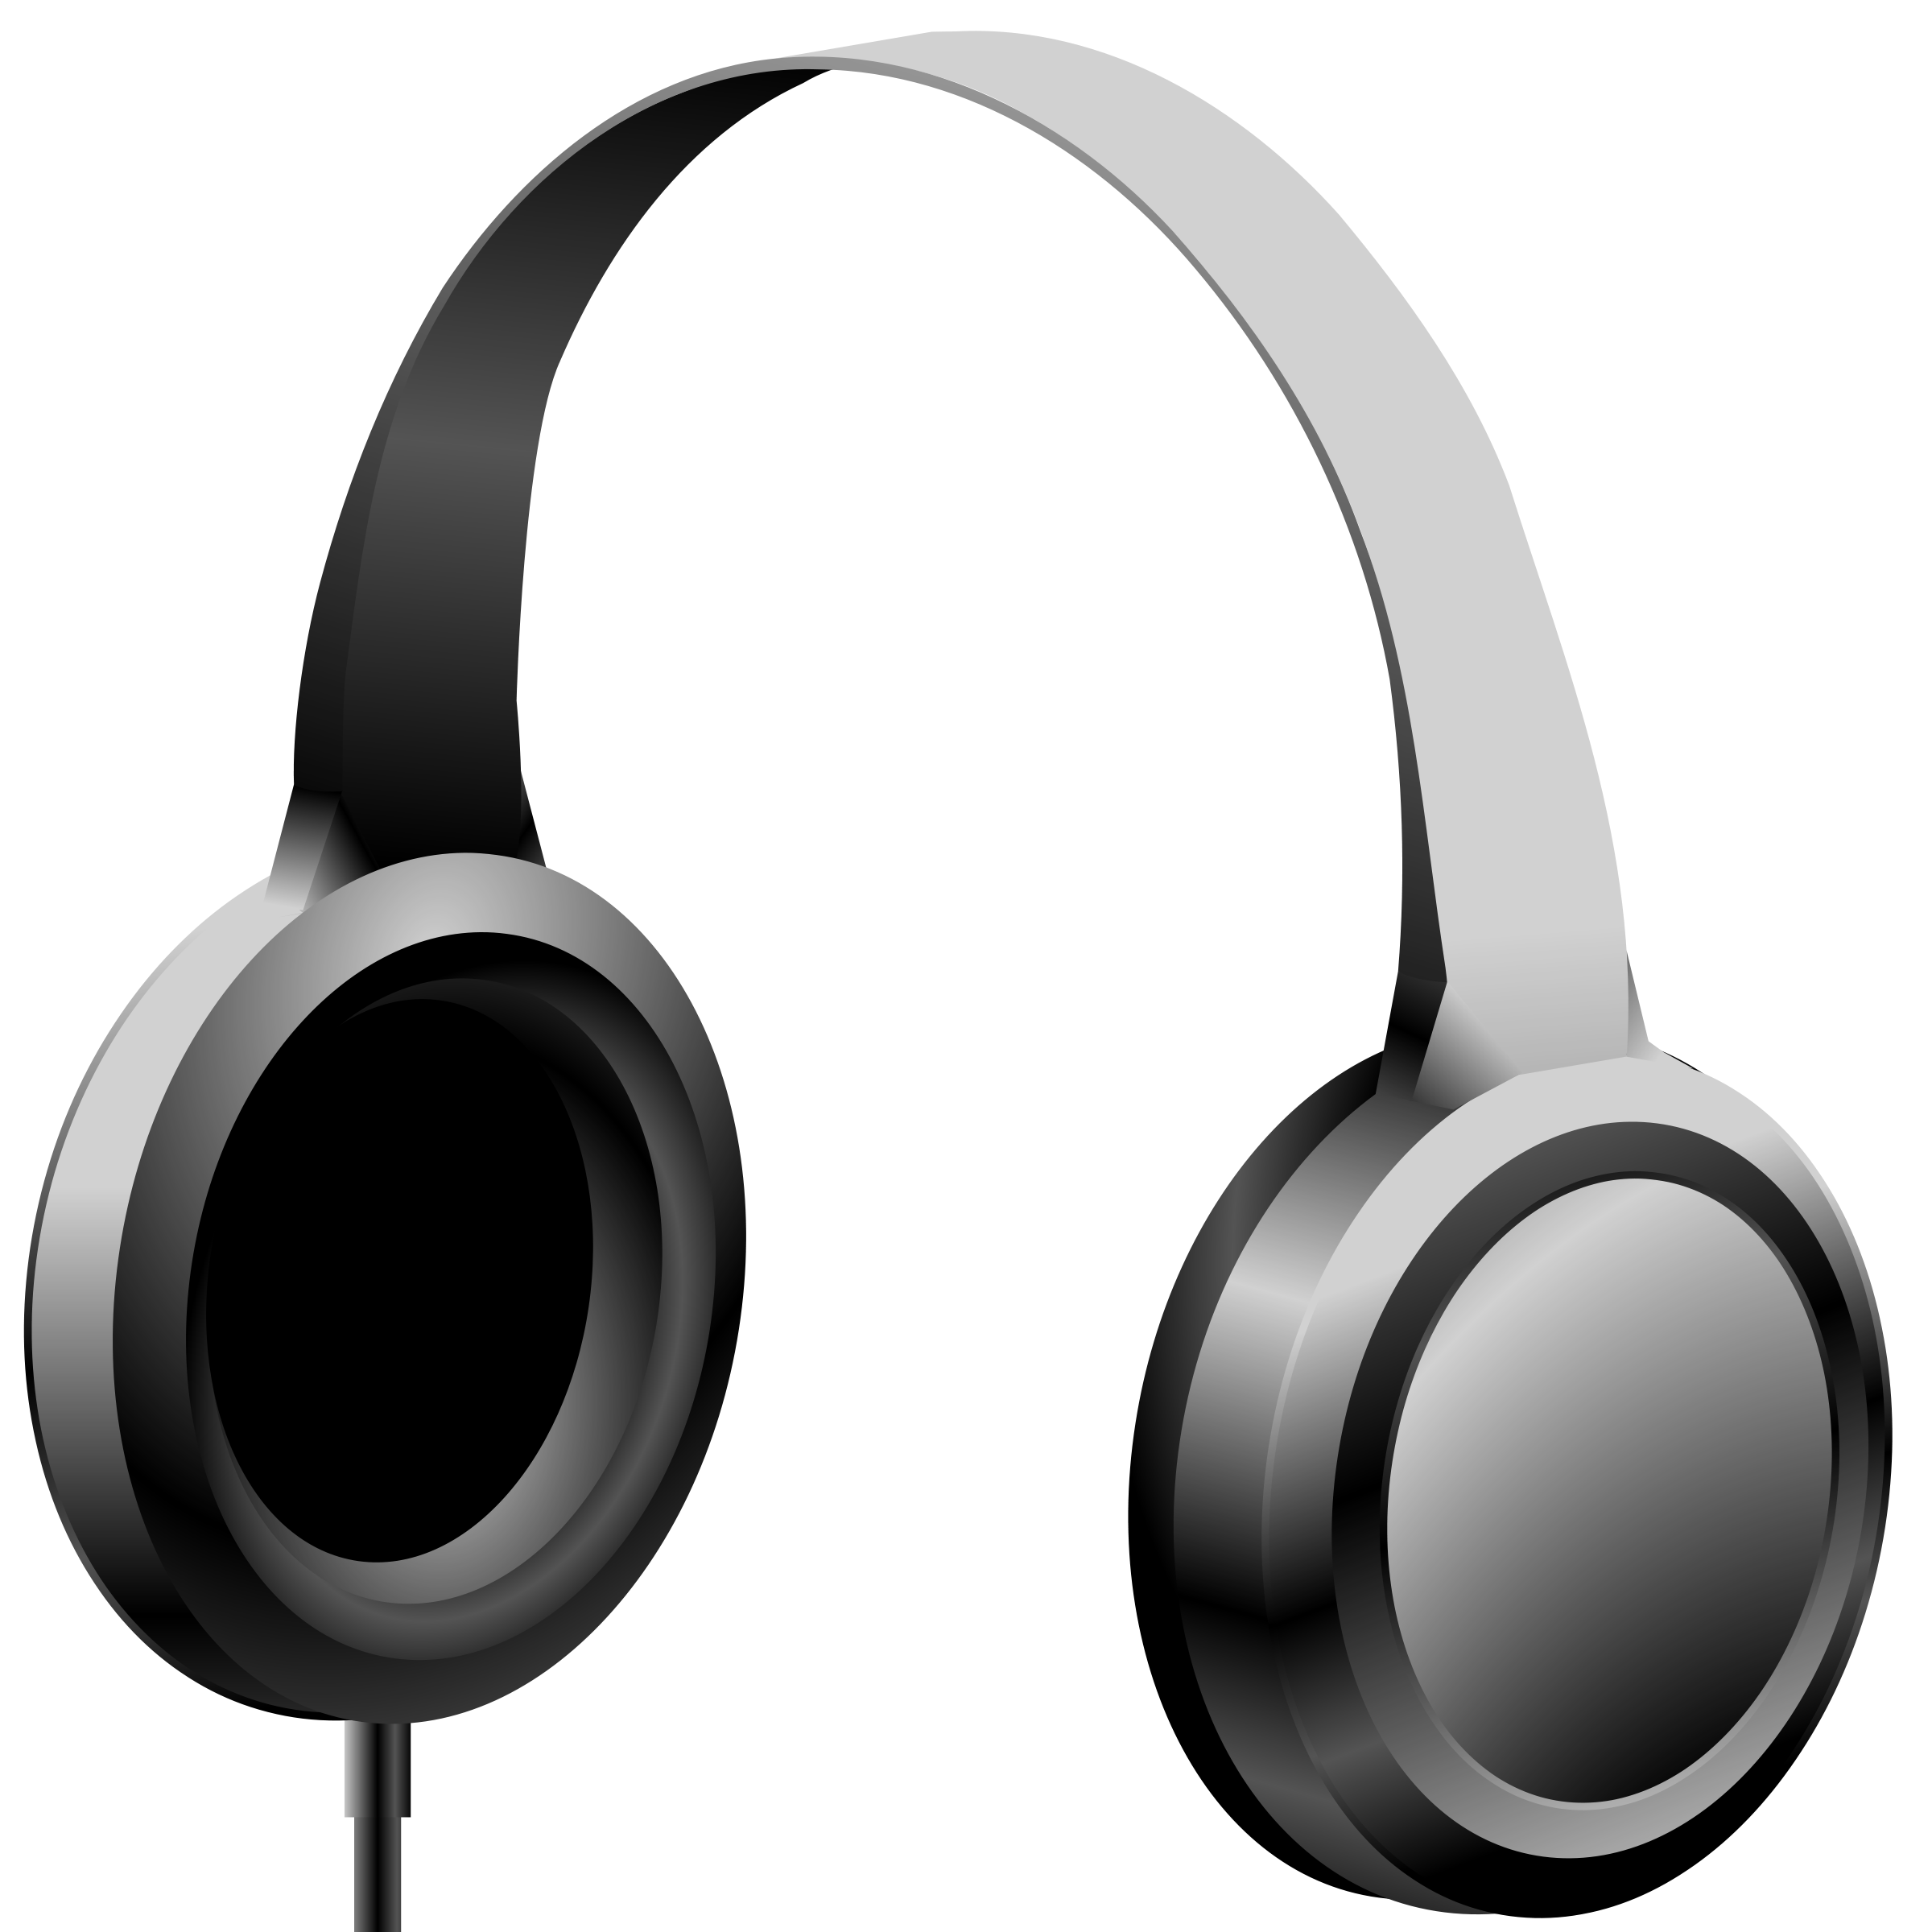 High Resolution Headphones Png Icon image #20176